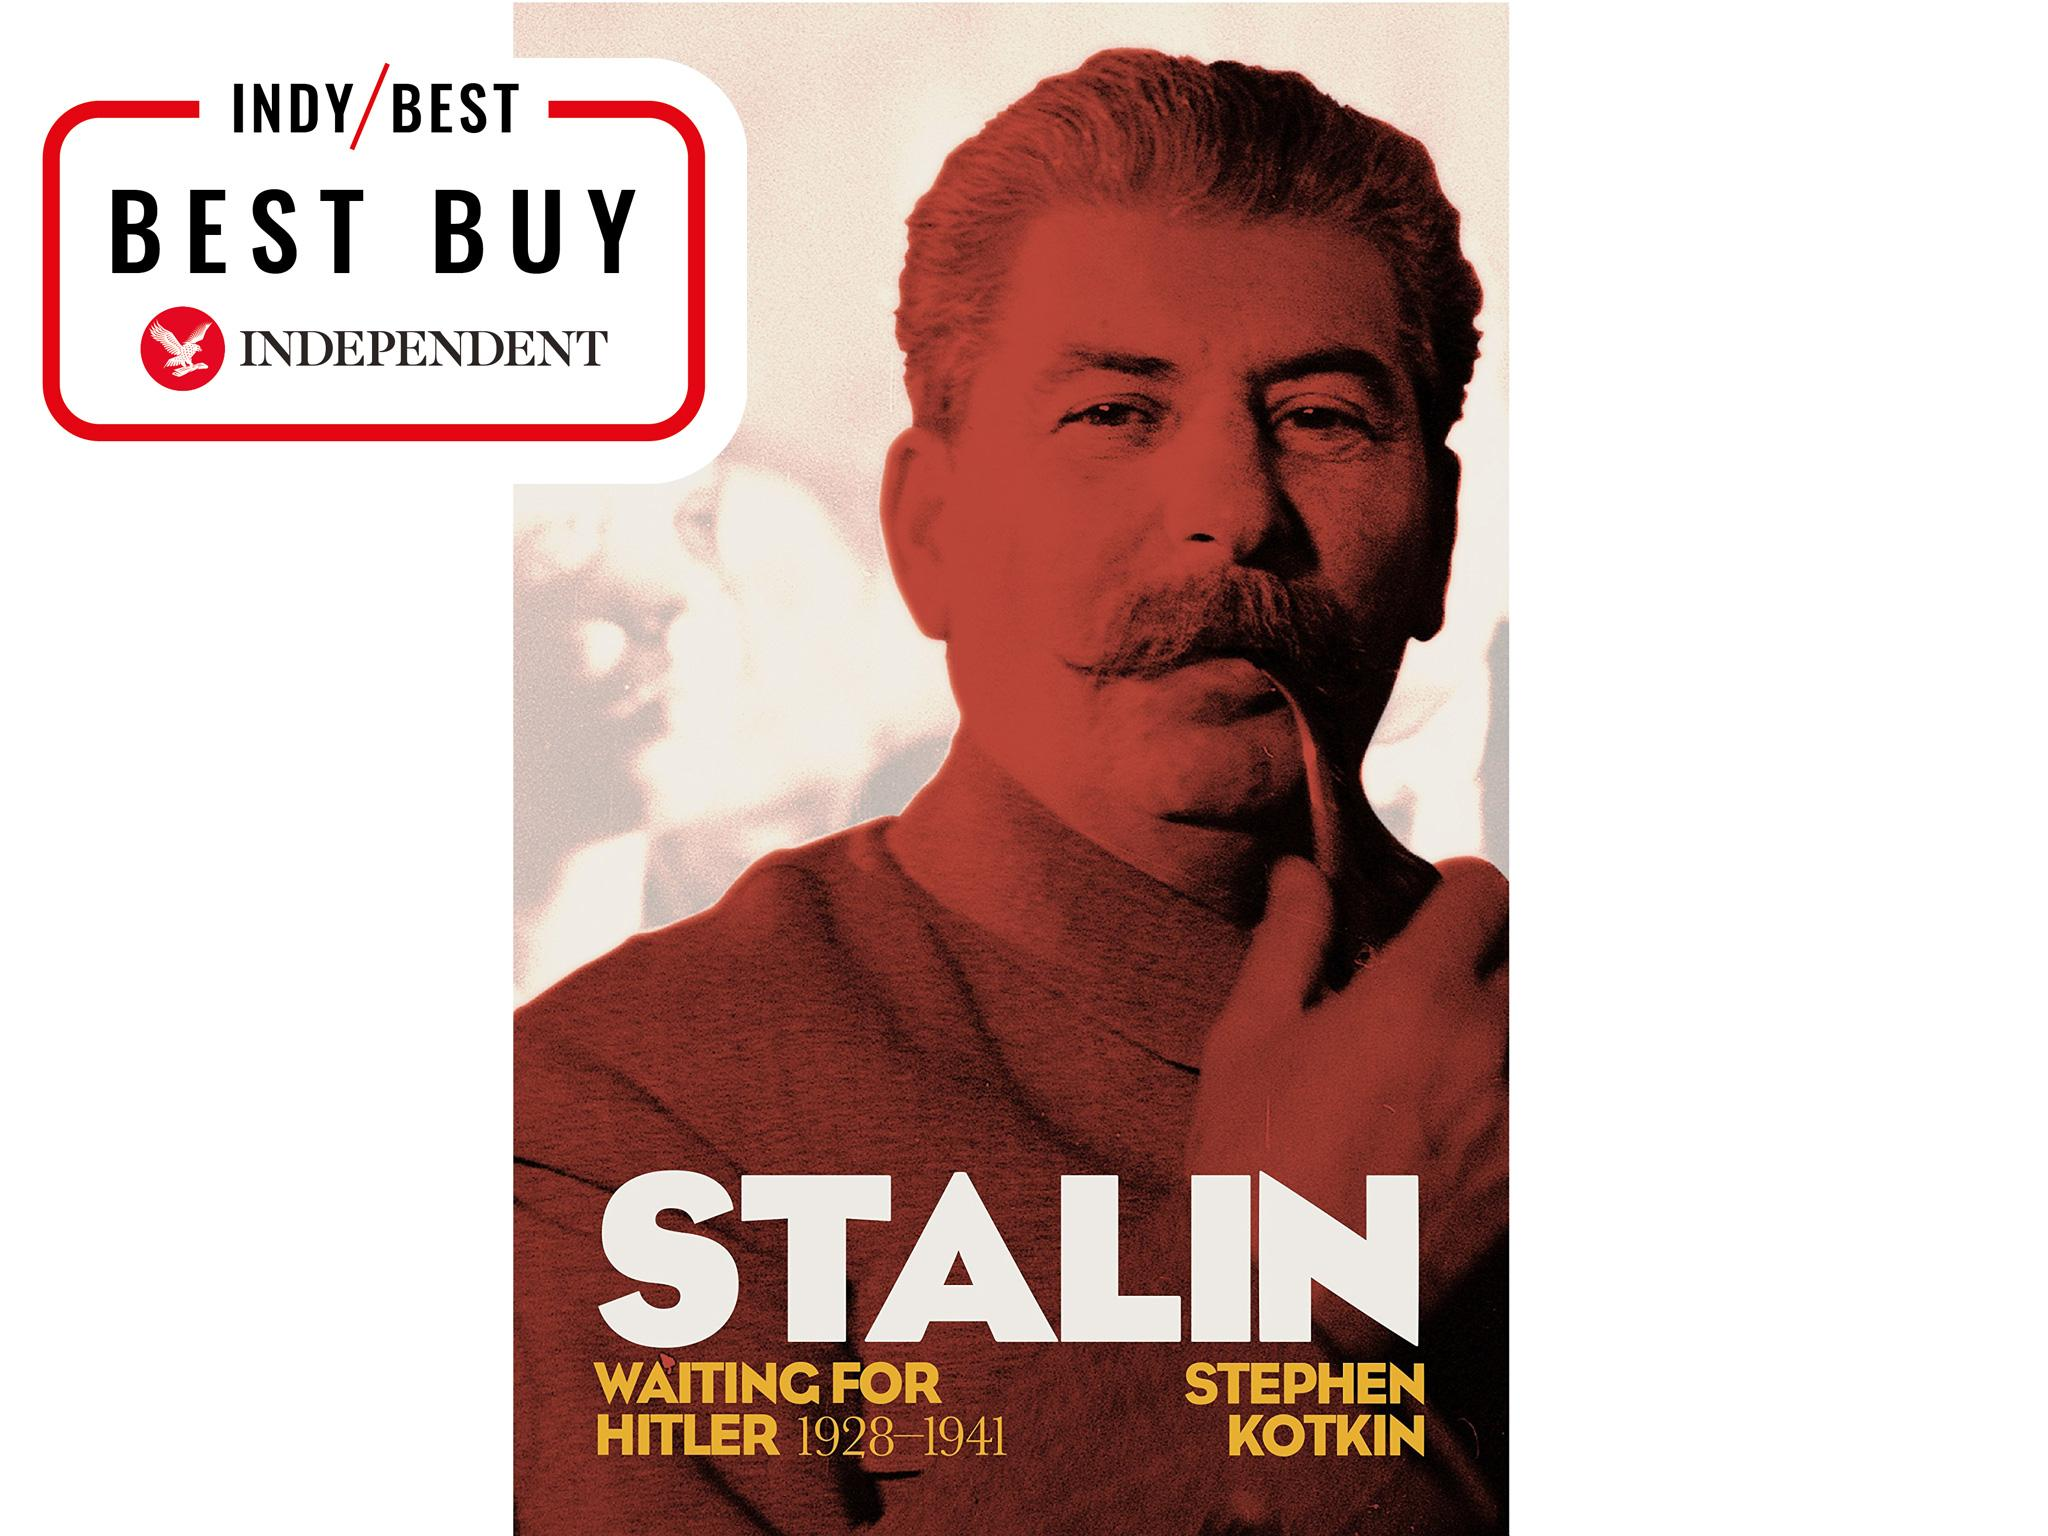 6 best russian history books the independent stalin vol ii waiting for hitler 1928 1941 by stephen kotkin 35 allen lane fandeluxe